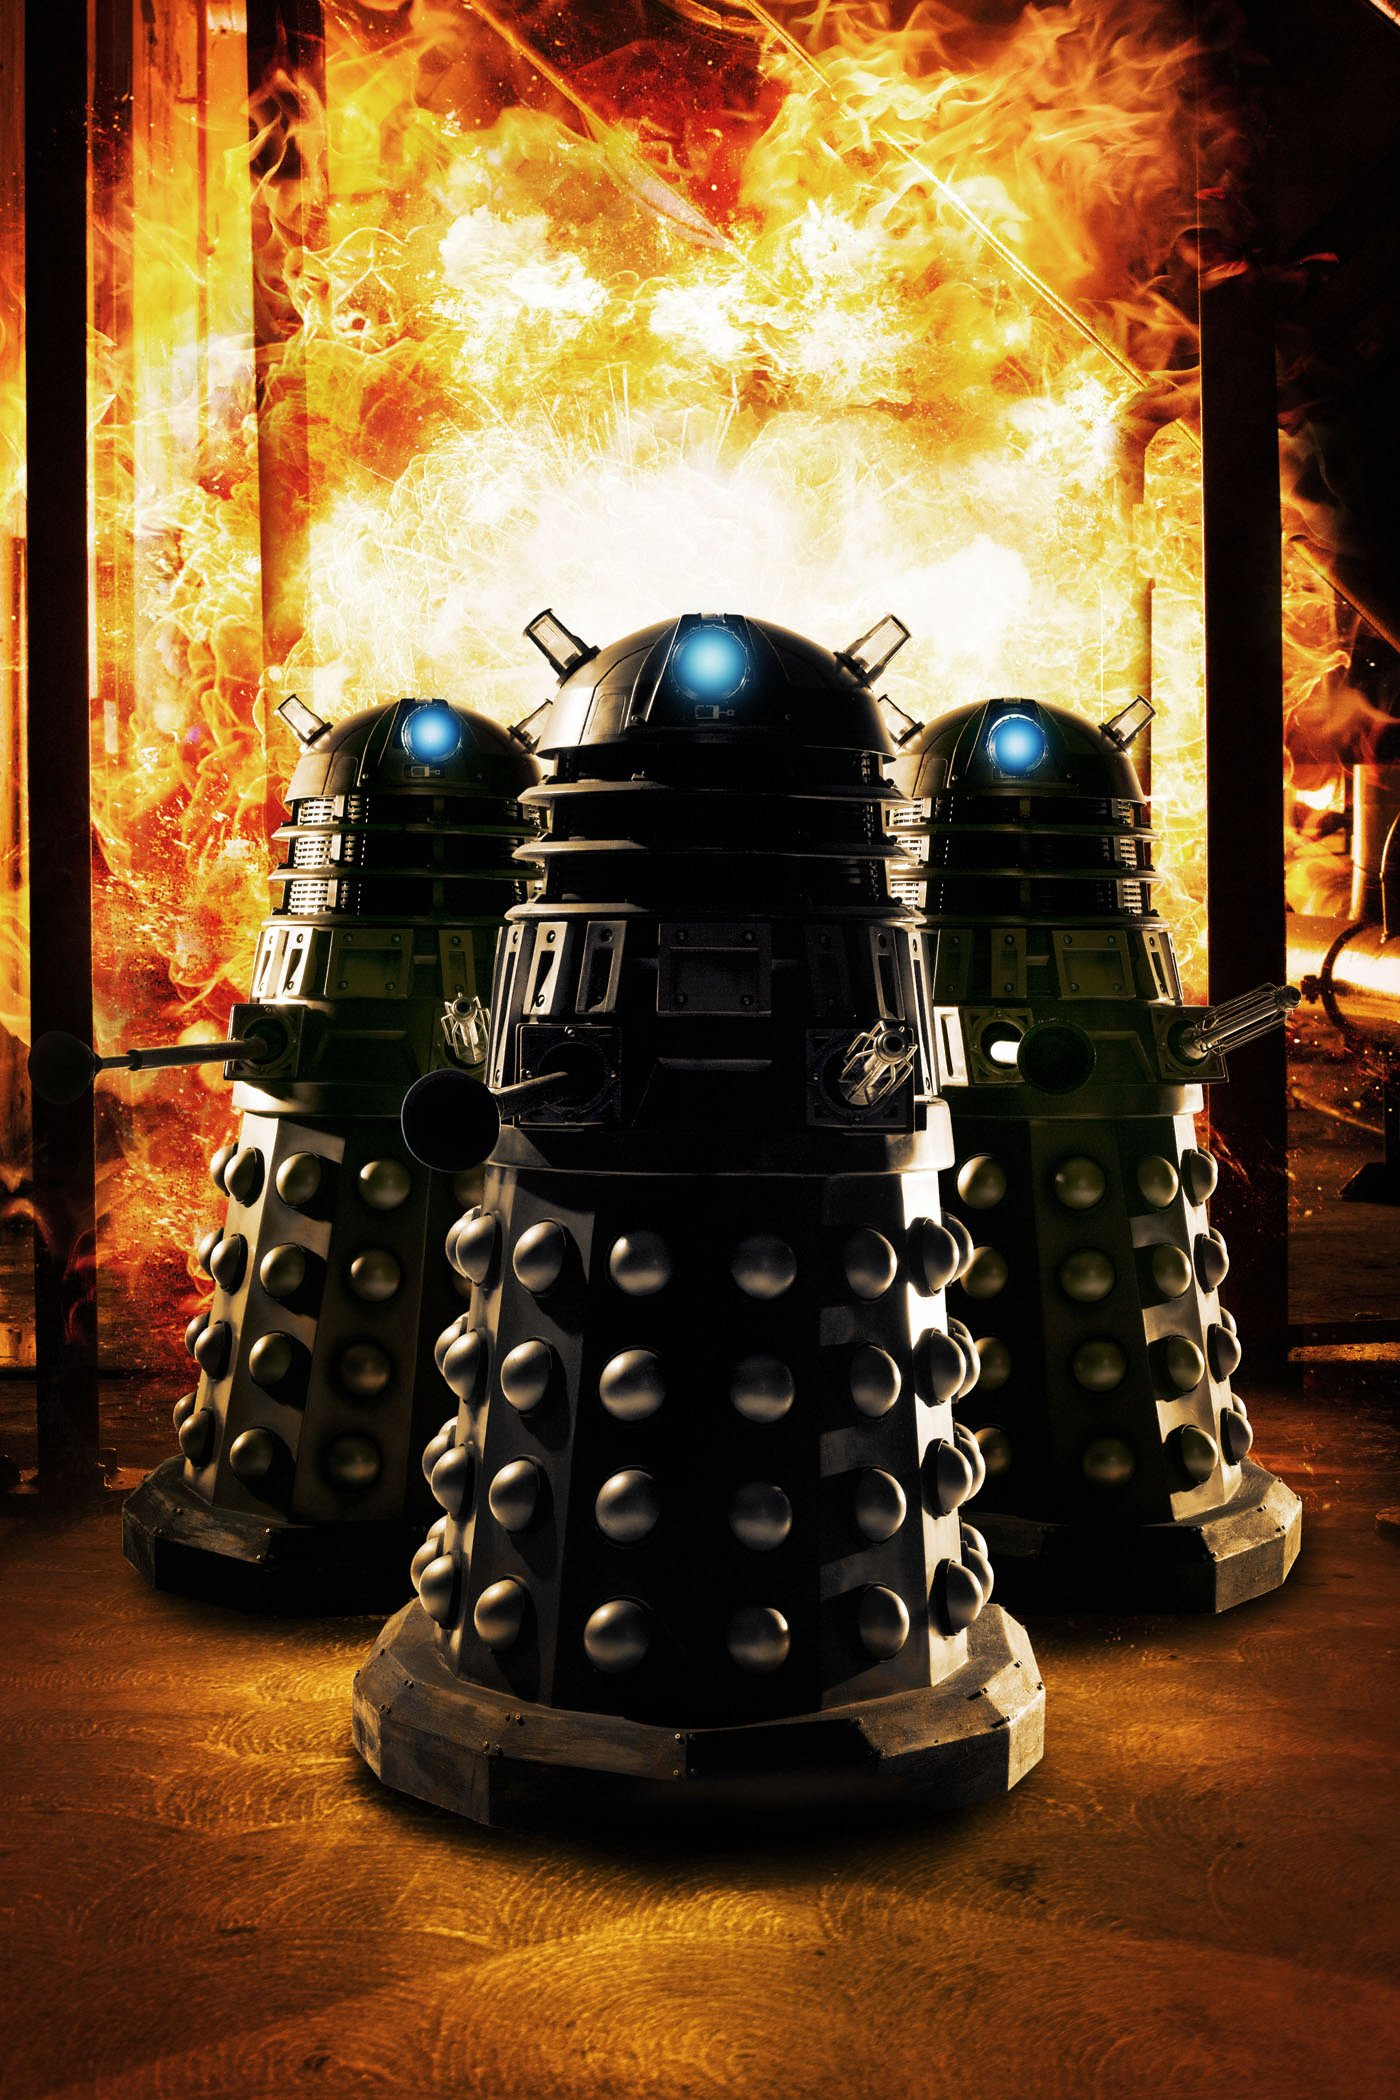 Empire State Building Wallpaper Hd Doctor Who Tv Series 3 Story 182 Daleks In Manhattan